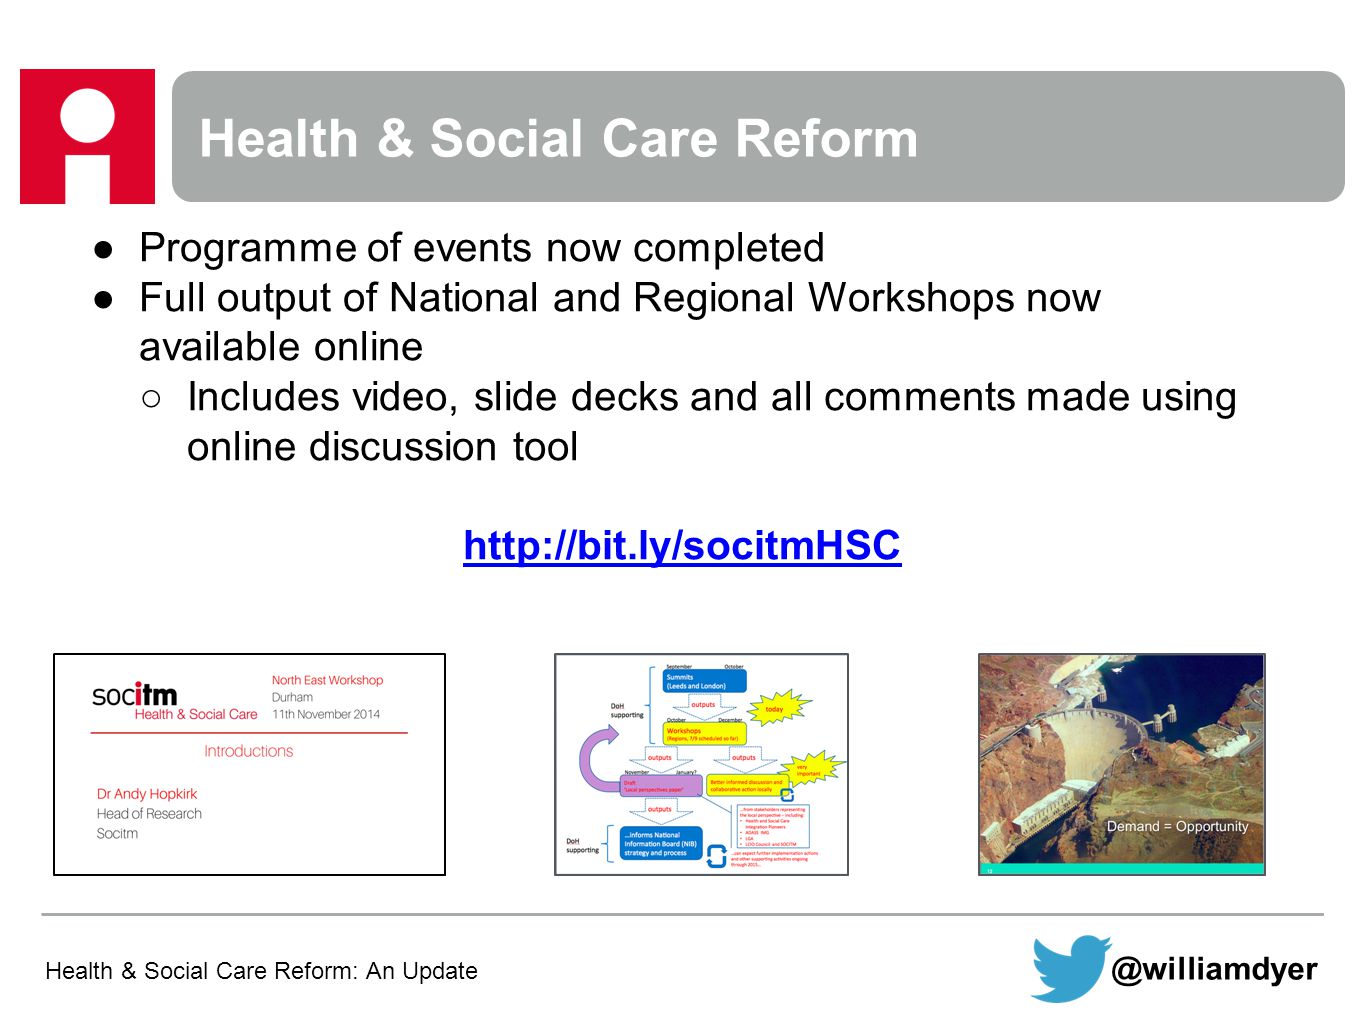 Health & Social Care Reform ●Programme of events now completed ●Full output of National and Regional Workshops now available online ○Includes video, slide decks and all comments made using online discussion tool http://bit.ly/socitmHSC Health & Social Care Reform: An Update @williamdyer